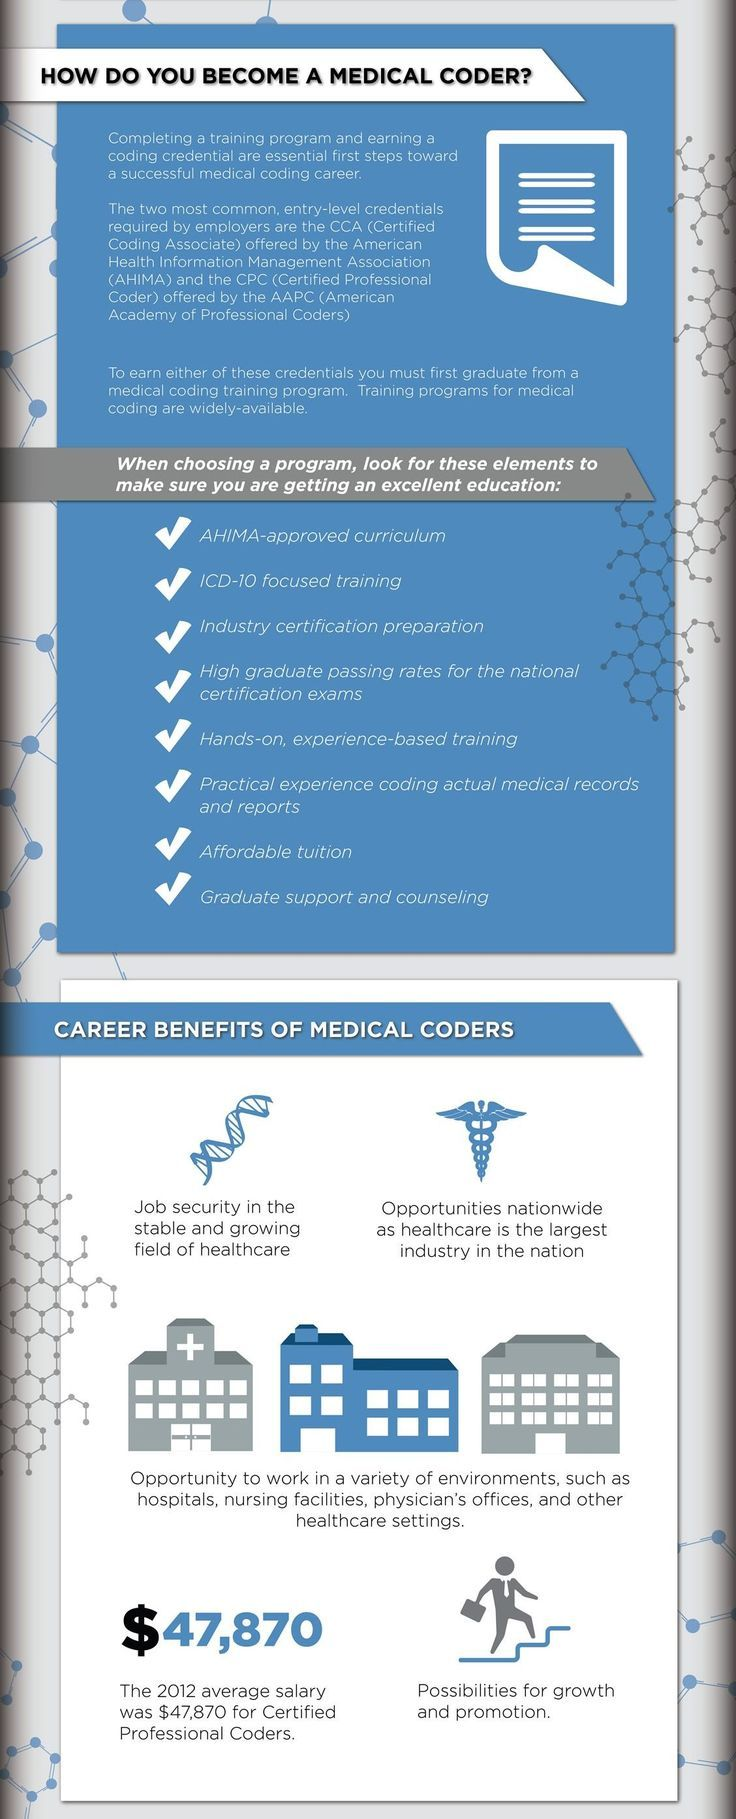 Pin on Medical Billing and Coding Jobs